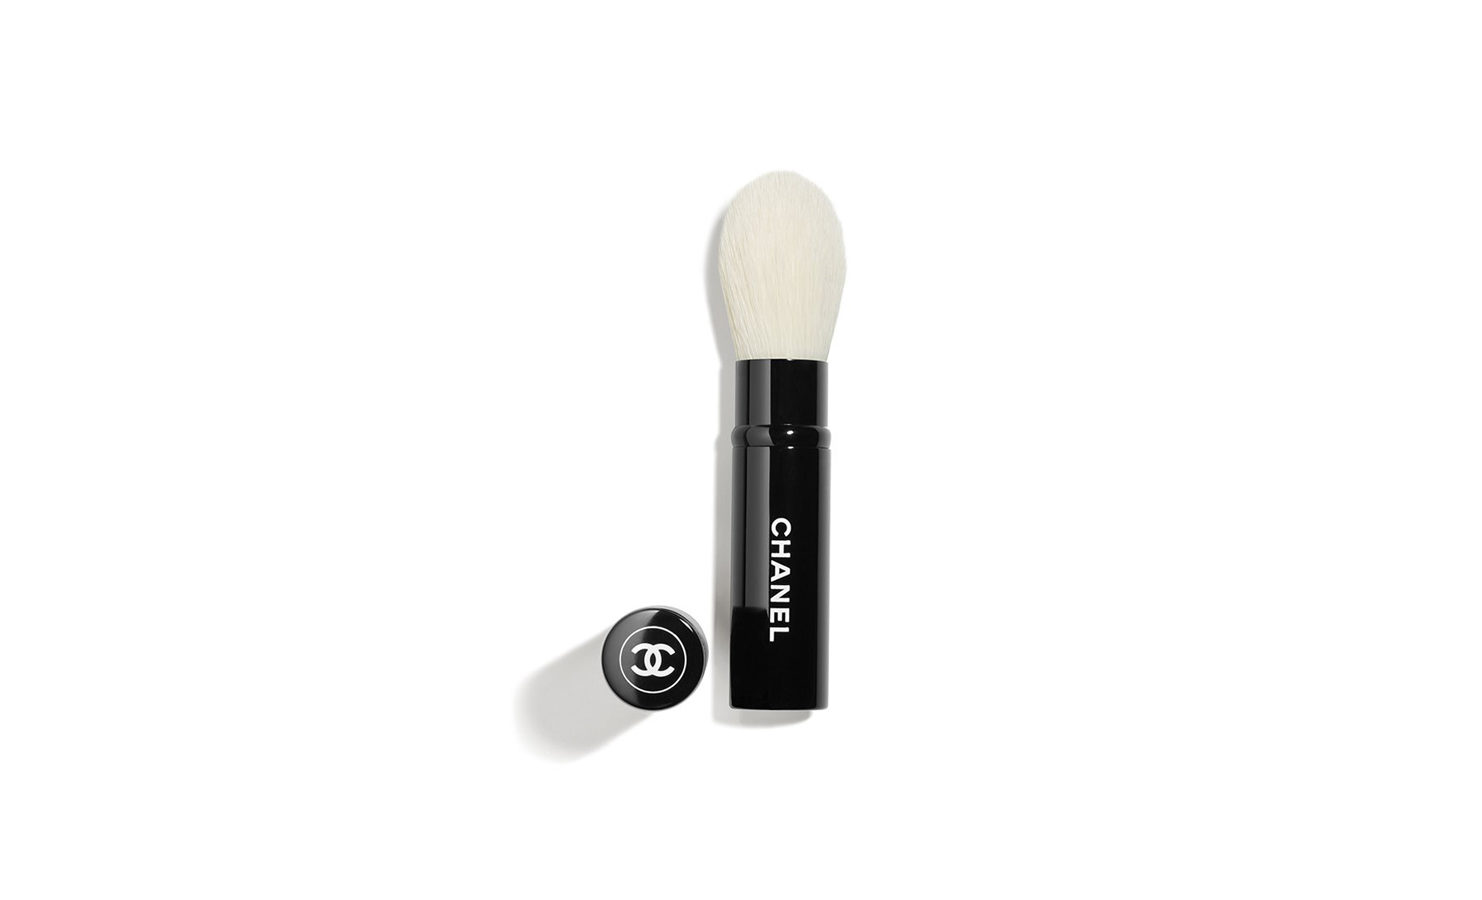 LES PINCEAUX DE CHANEL – Retractable Hightlighter Brush